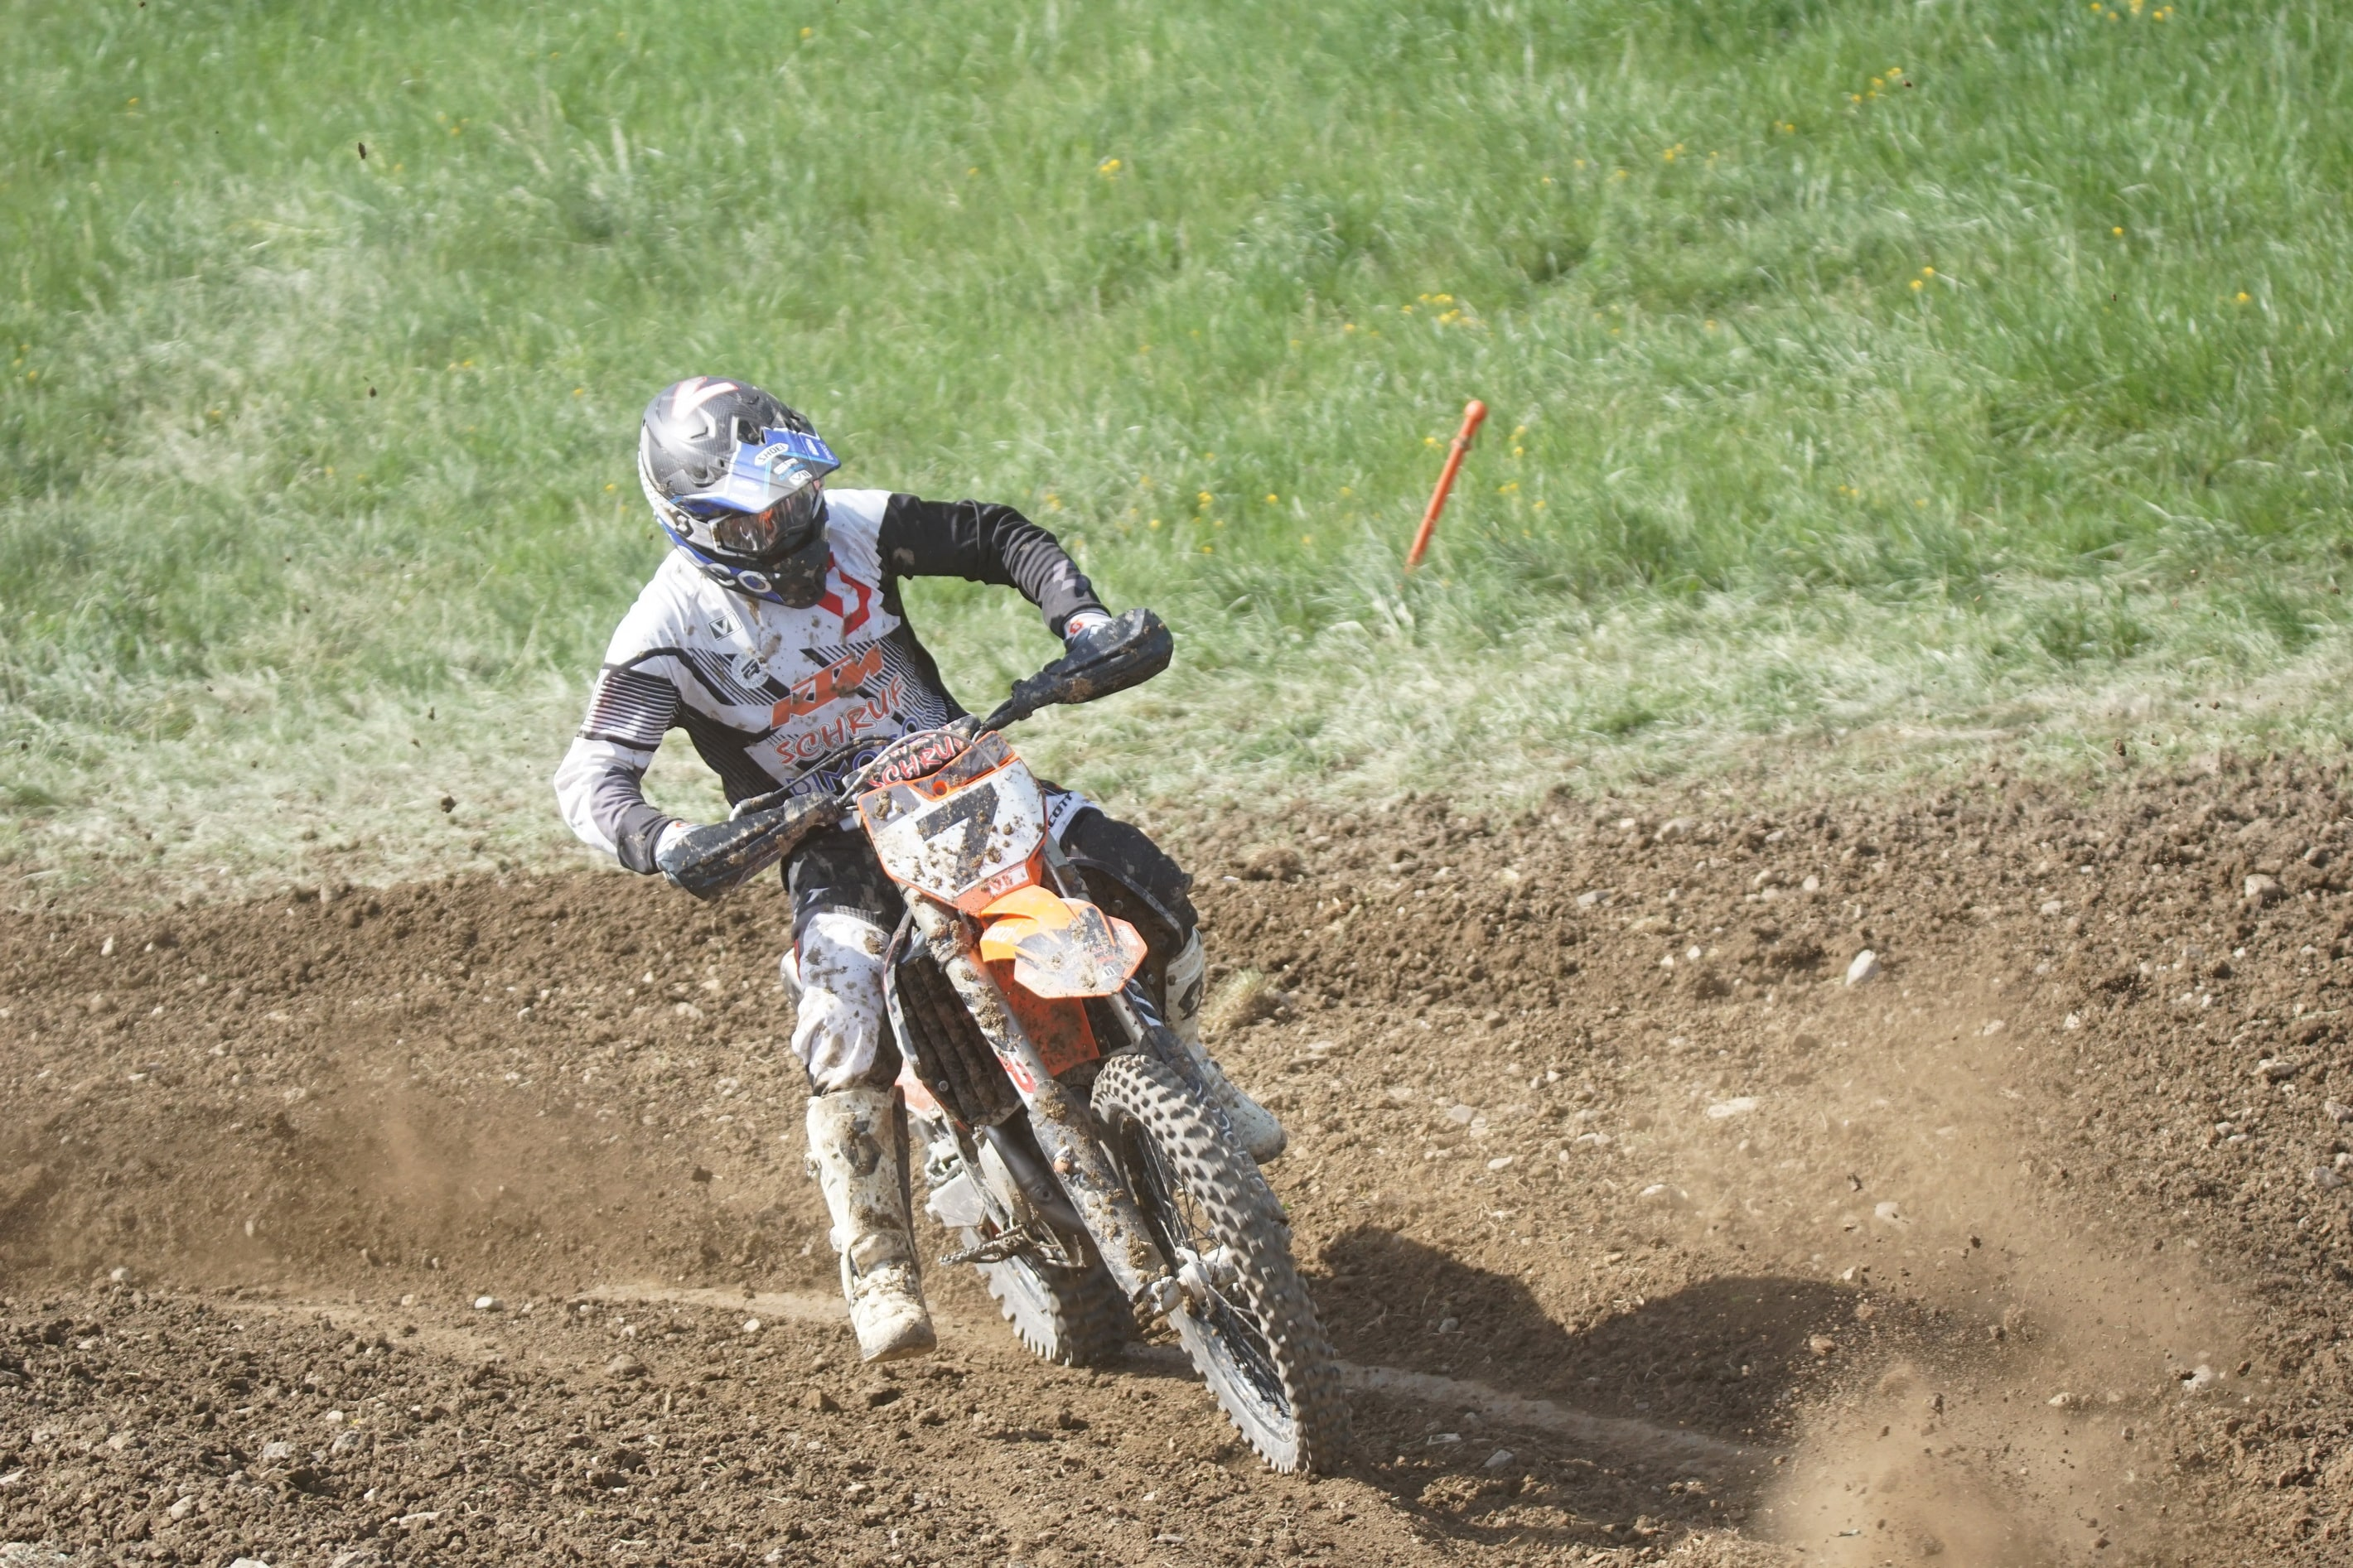 DSC 814_Moto Cross Sittendorf Teil1 am 29.04.2018